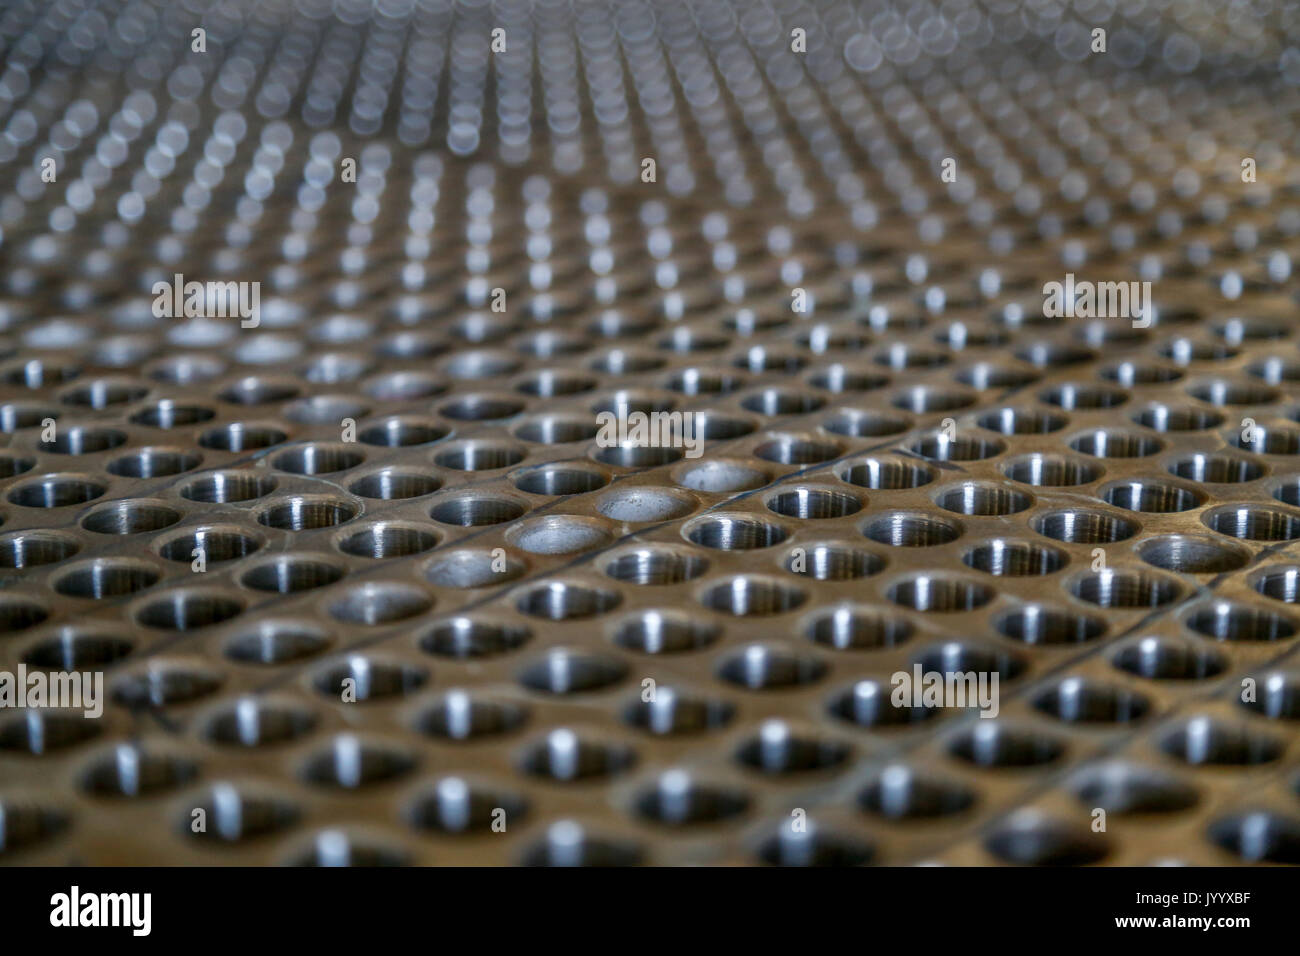 Perforated Sheet Stock Photos Amp Perforated Sheet Stock